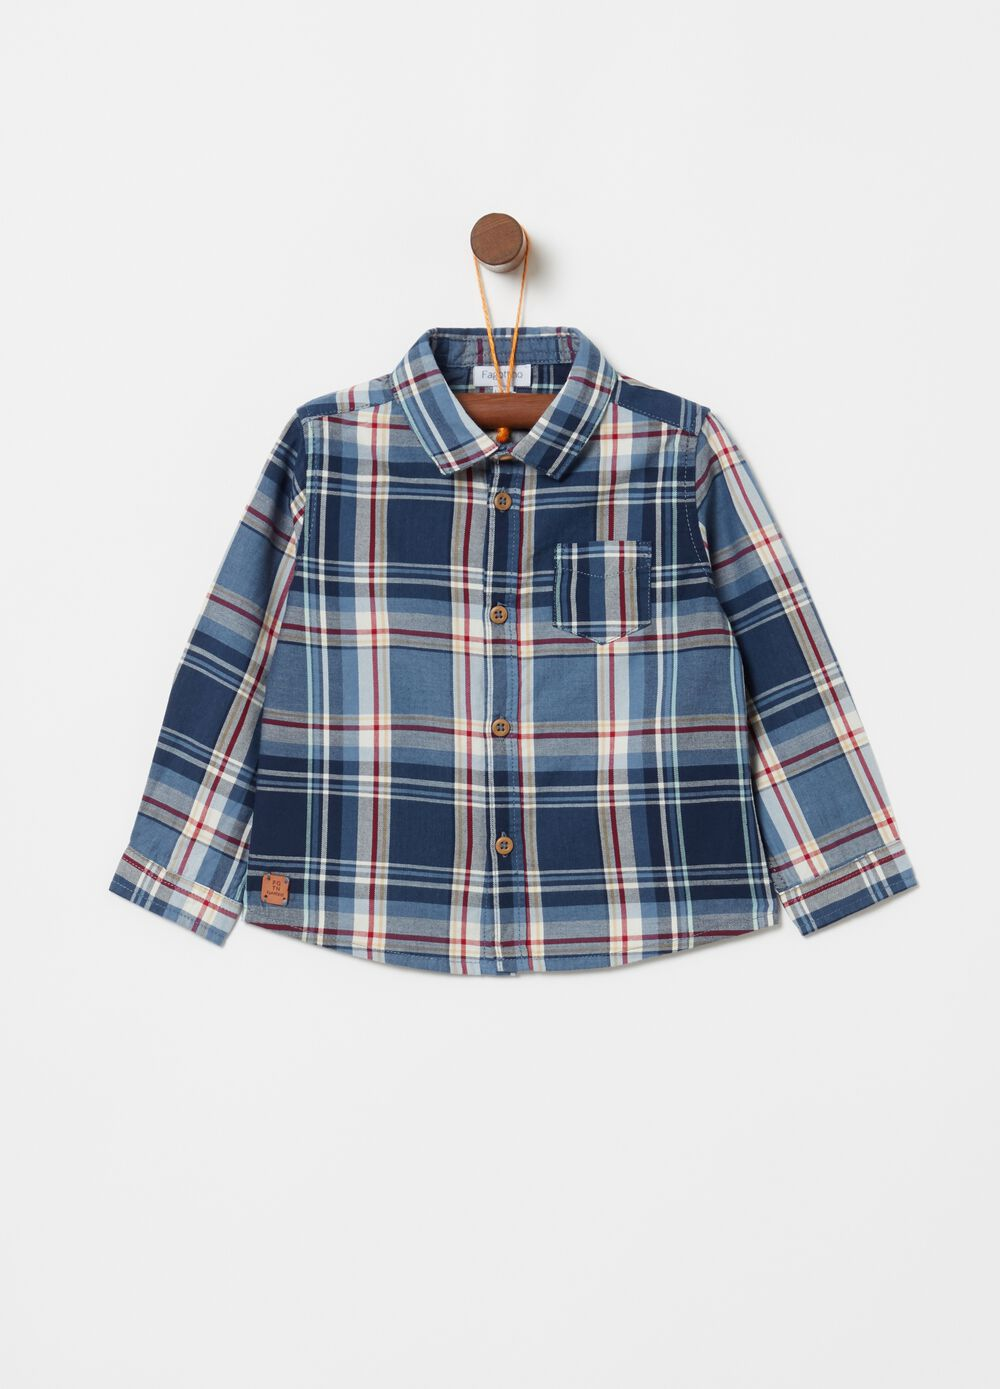 100% cotton check shirt with pocket